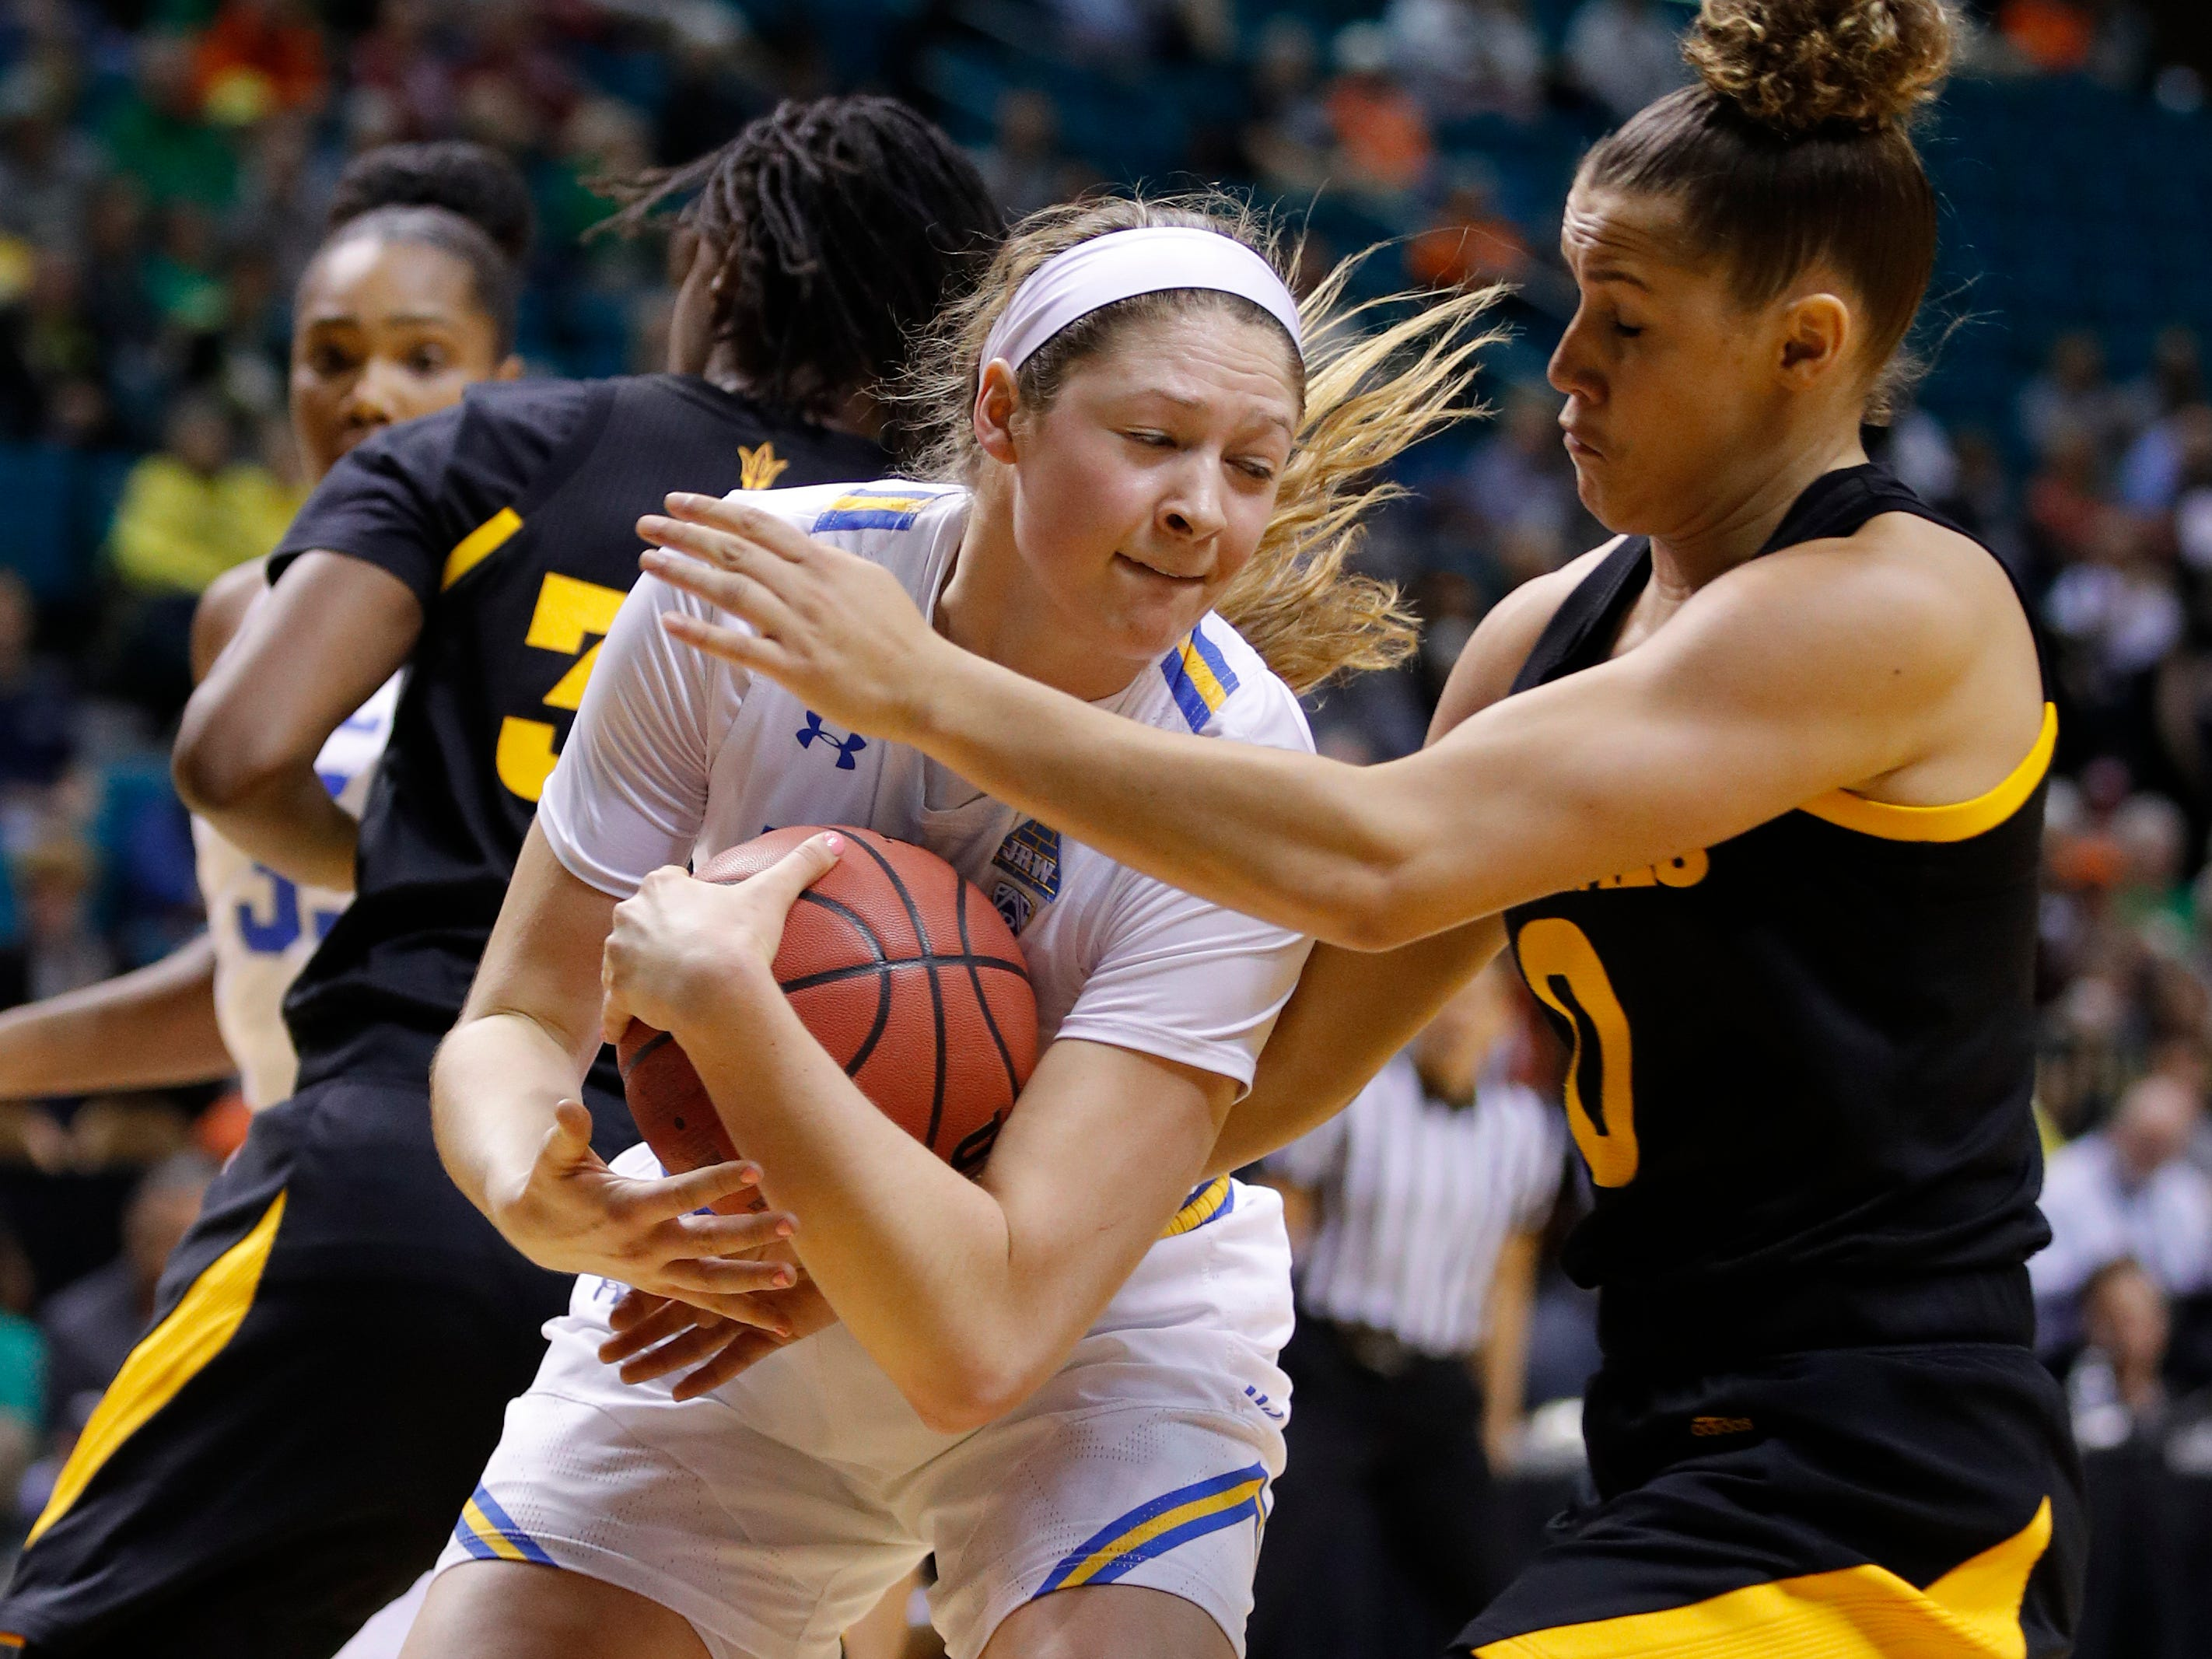 Arizona State's Taya Hanson, right, and UCLA's Lindsey Corsaro battle for a rebound during the first half of an NCAA college basketball game at the Pac-12 women's tournament Friday, March 8, 2019, in Las Vegas.